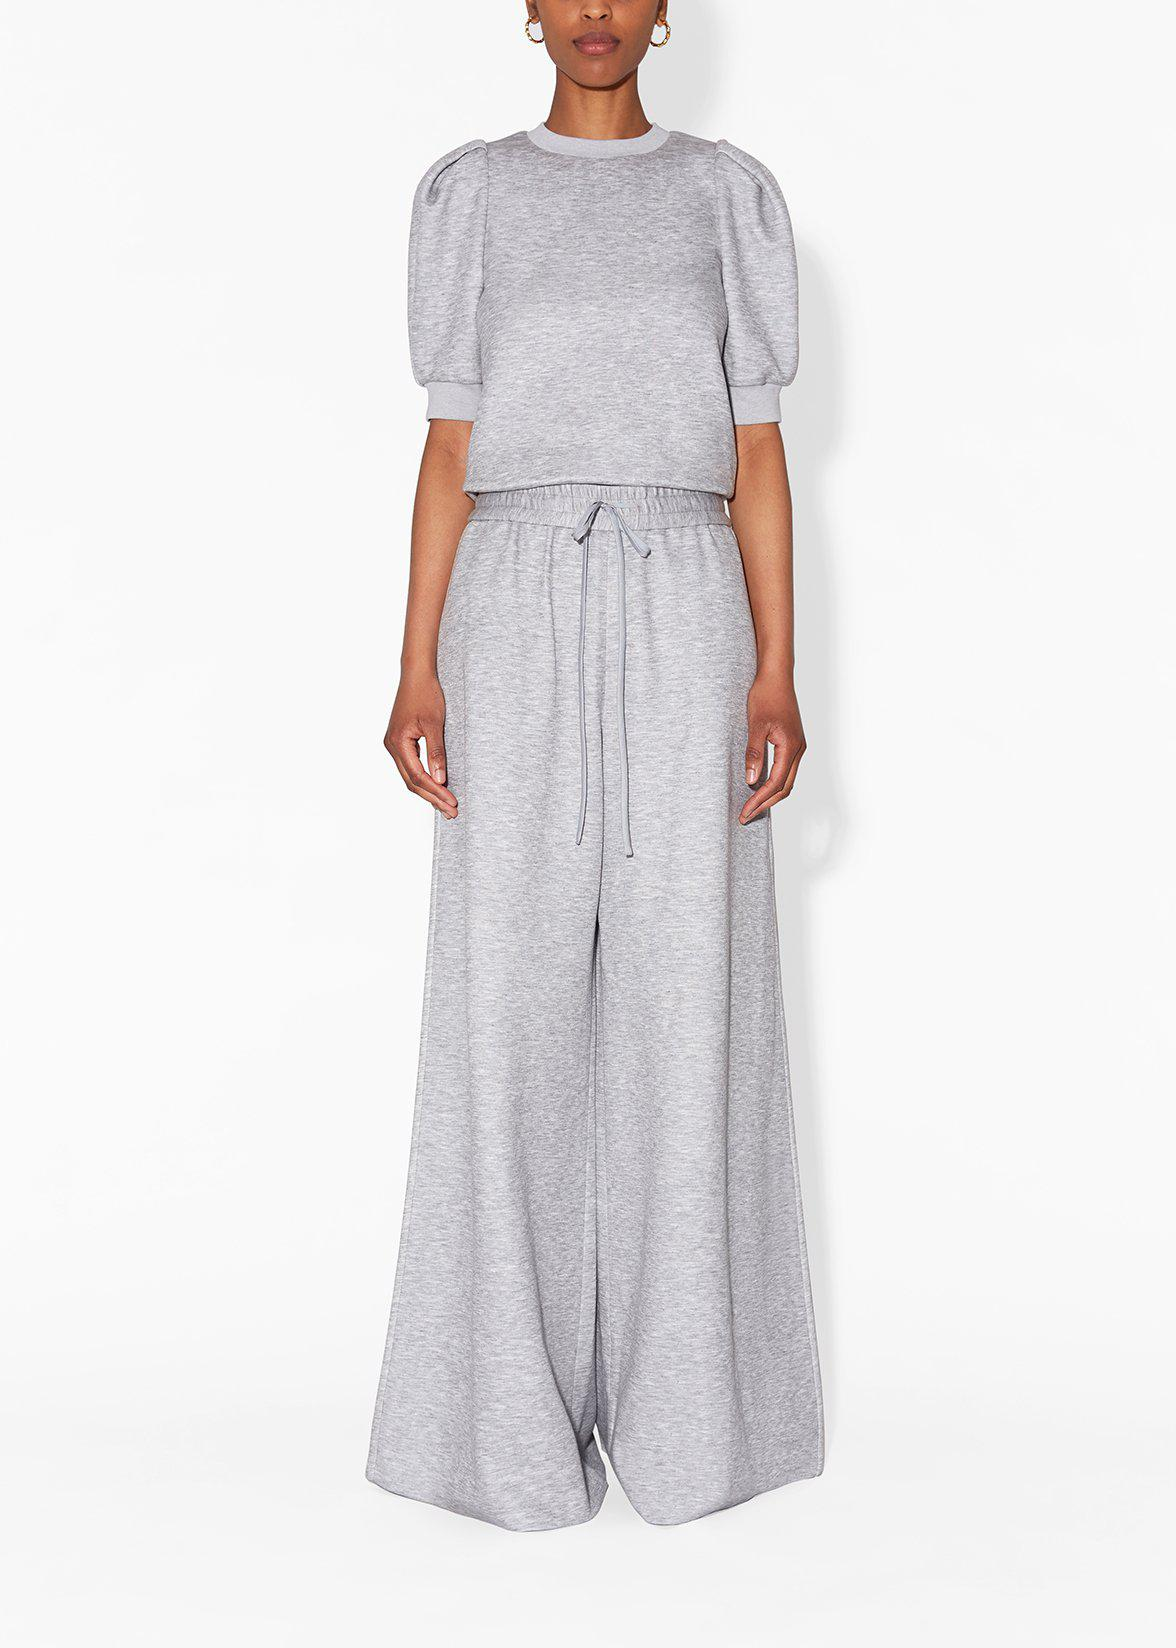 WIDE-LEG LOUNGE PANT IN LUXE JERSEY